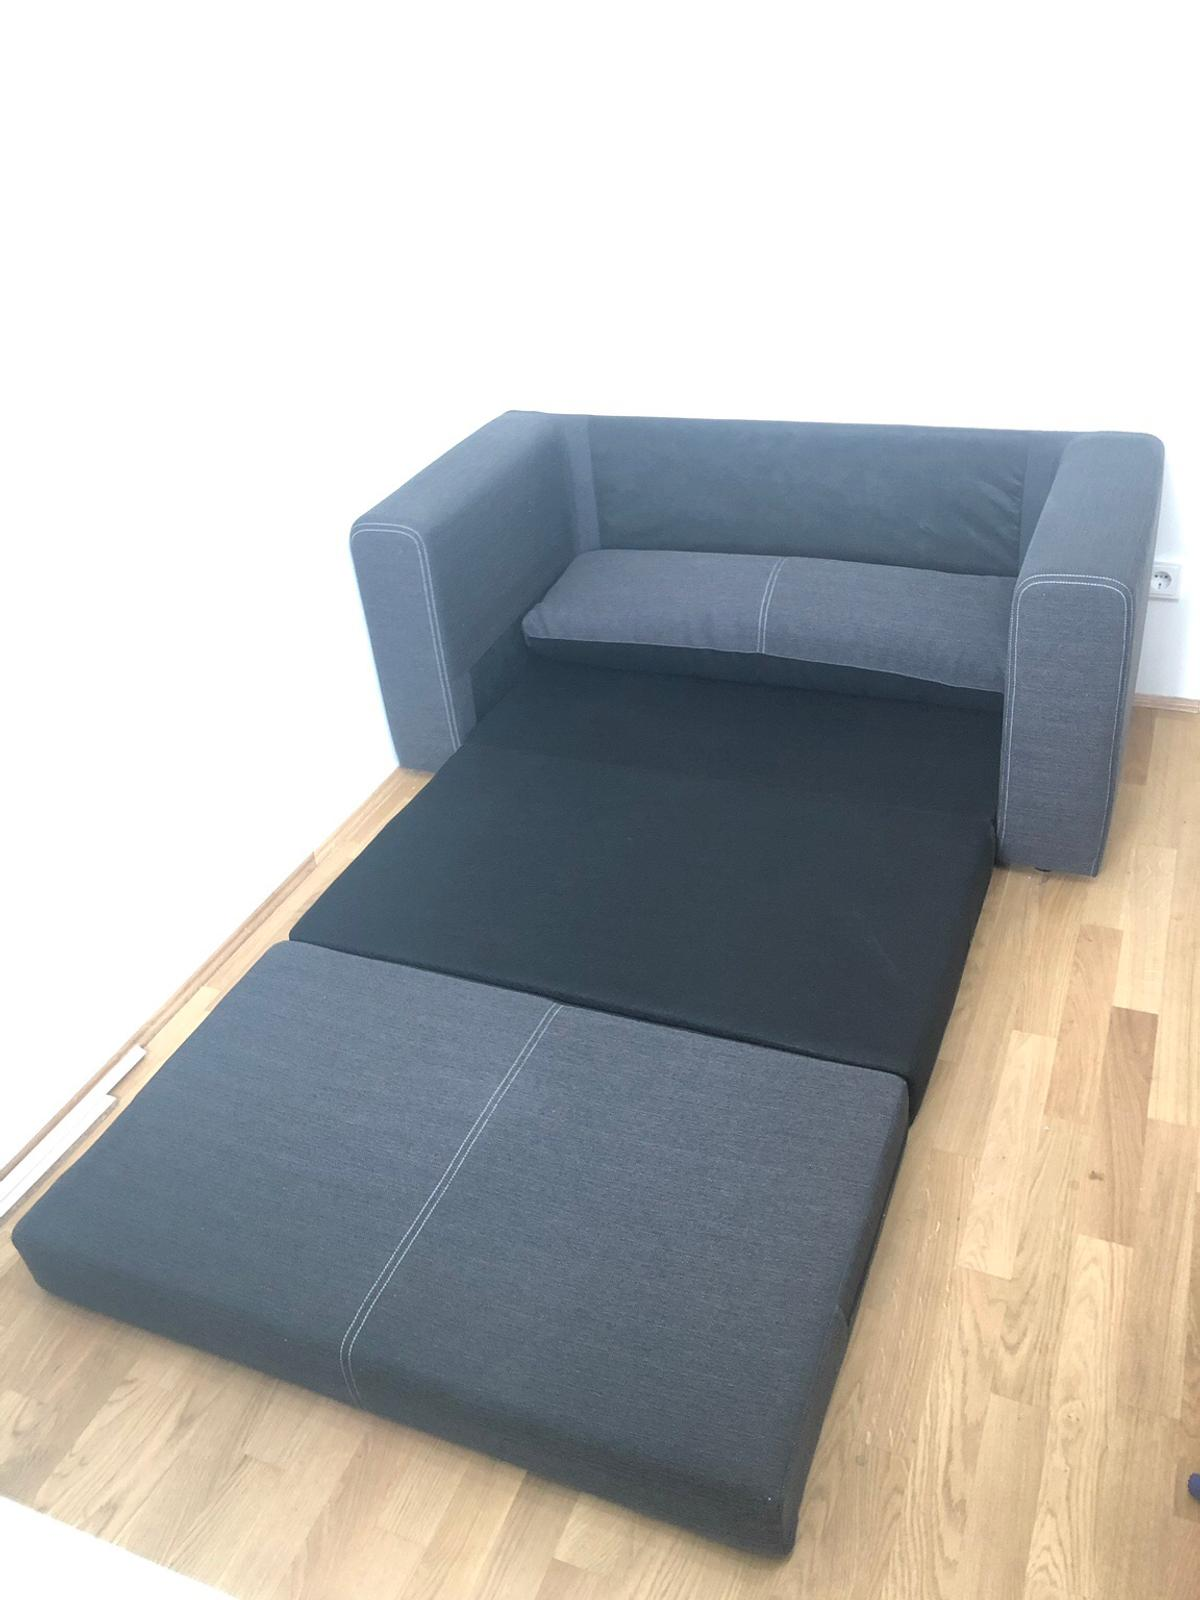 Bett Sofa Bettsofa